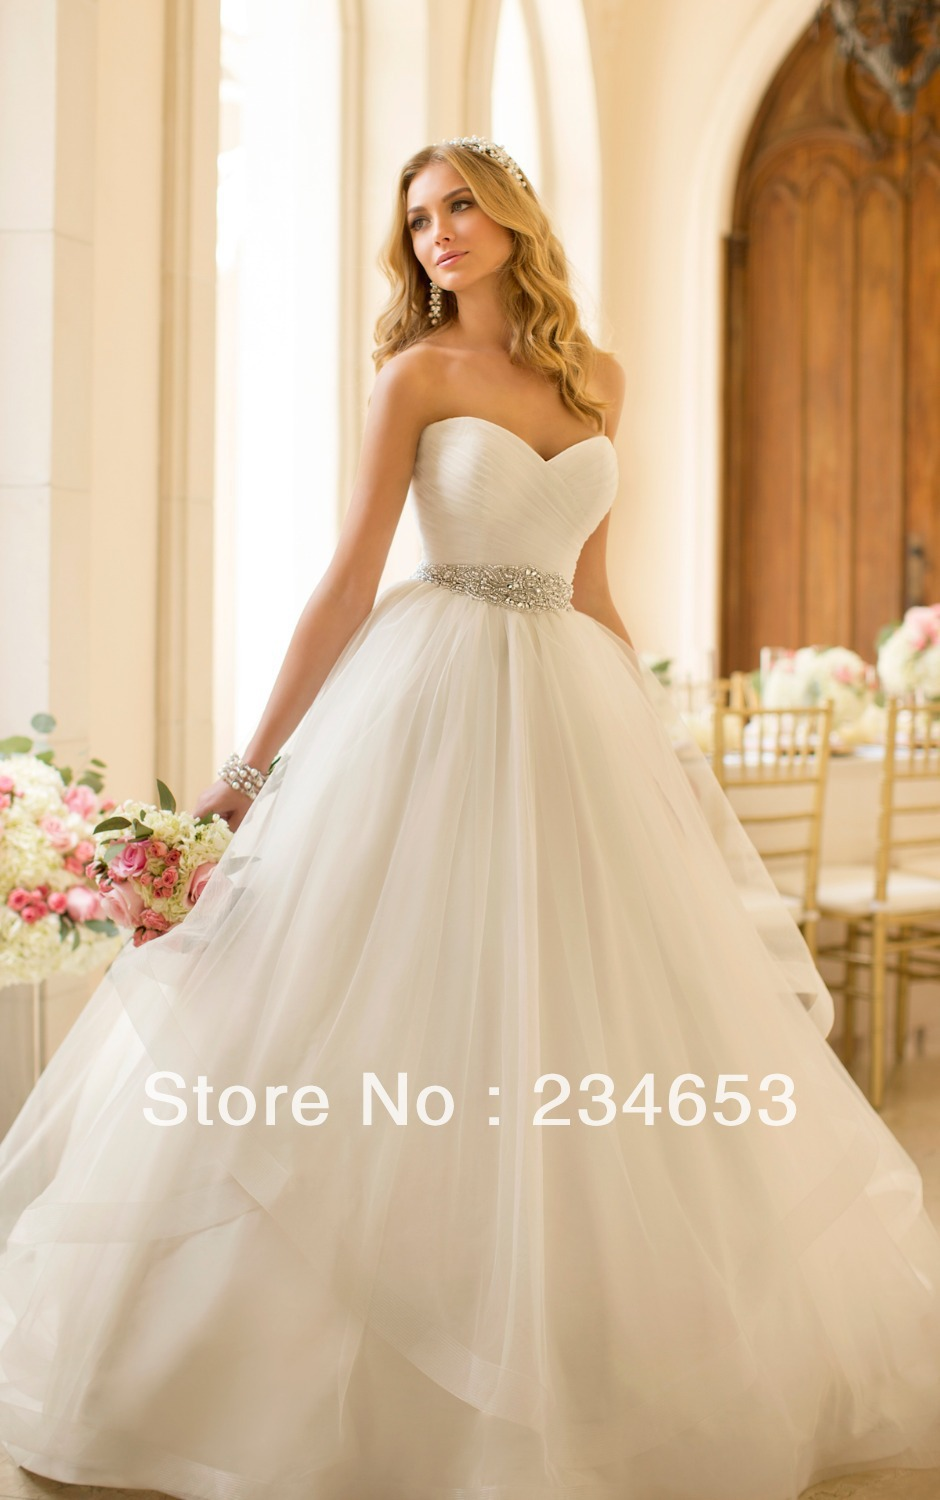 Sexy Tulle Ball Gown Diamante Belt Wedding Dresses With Crisscross